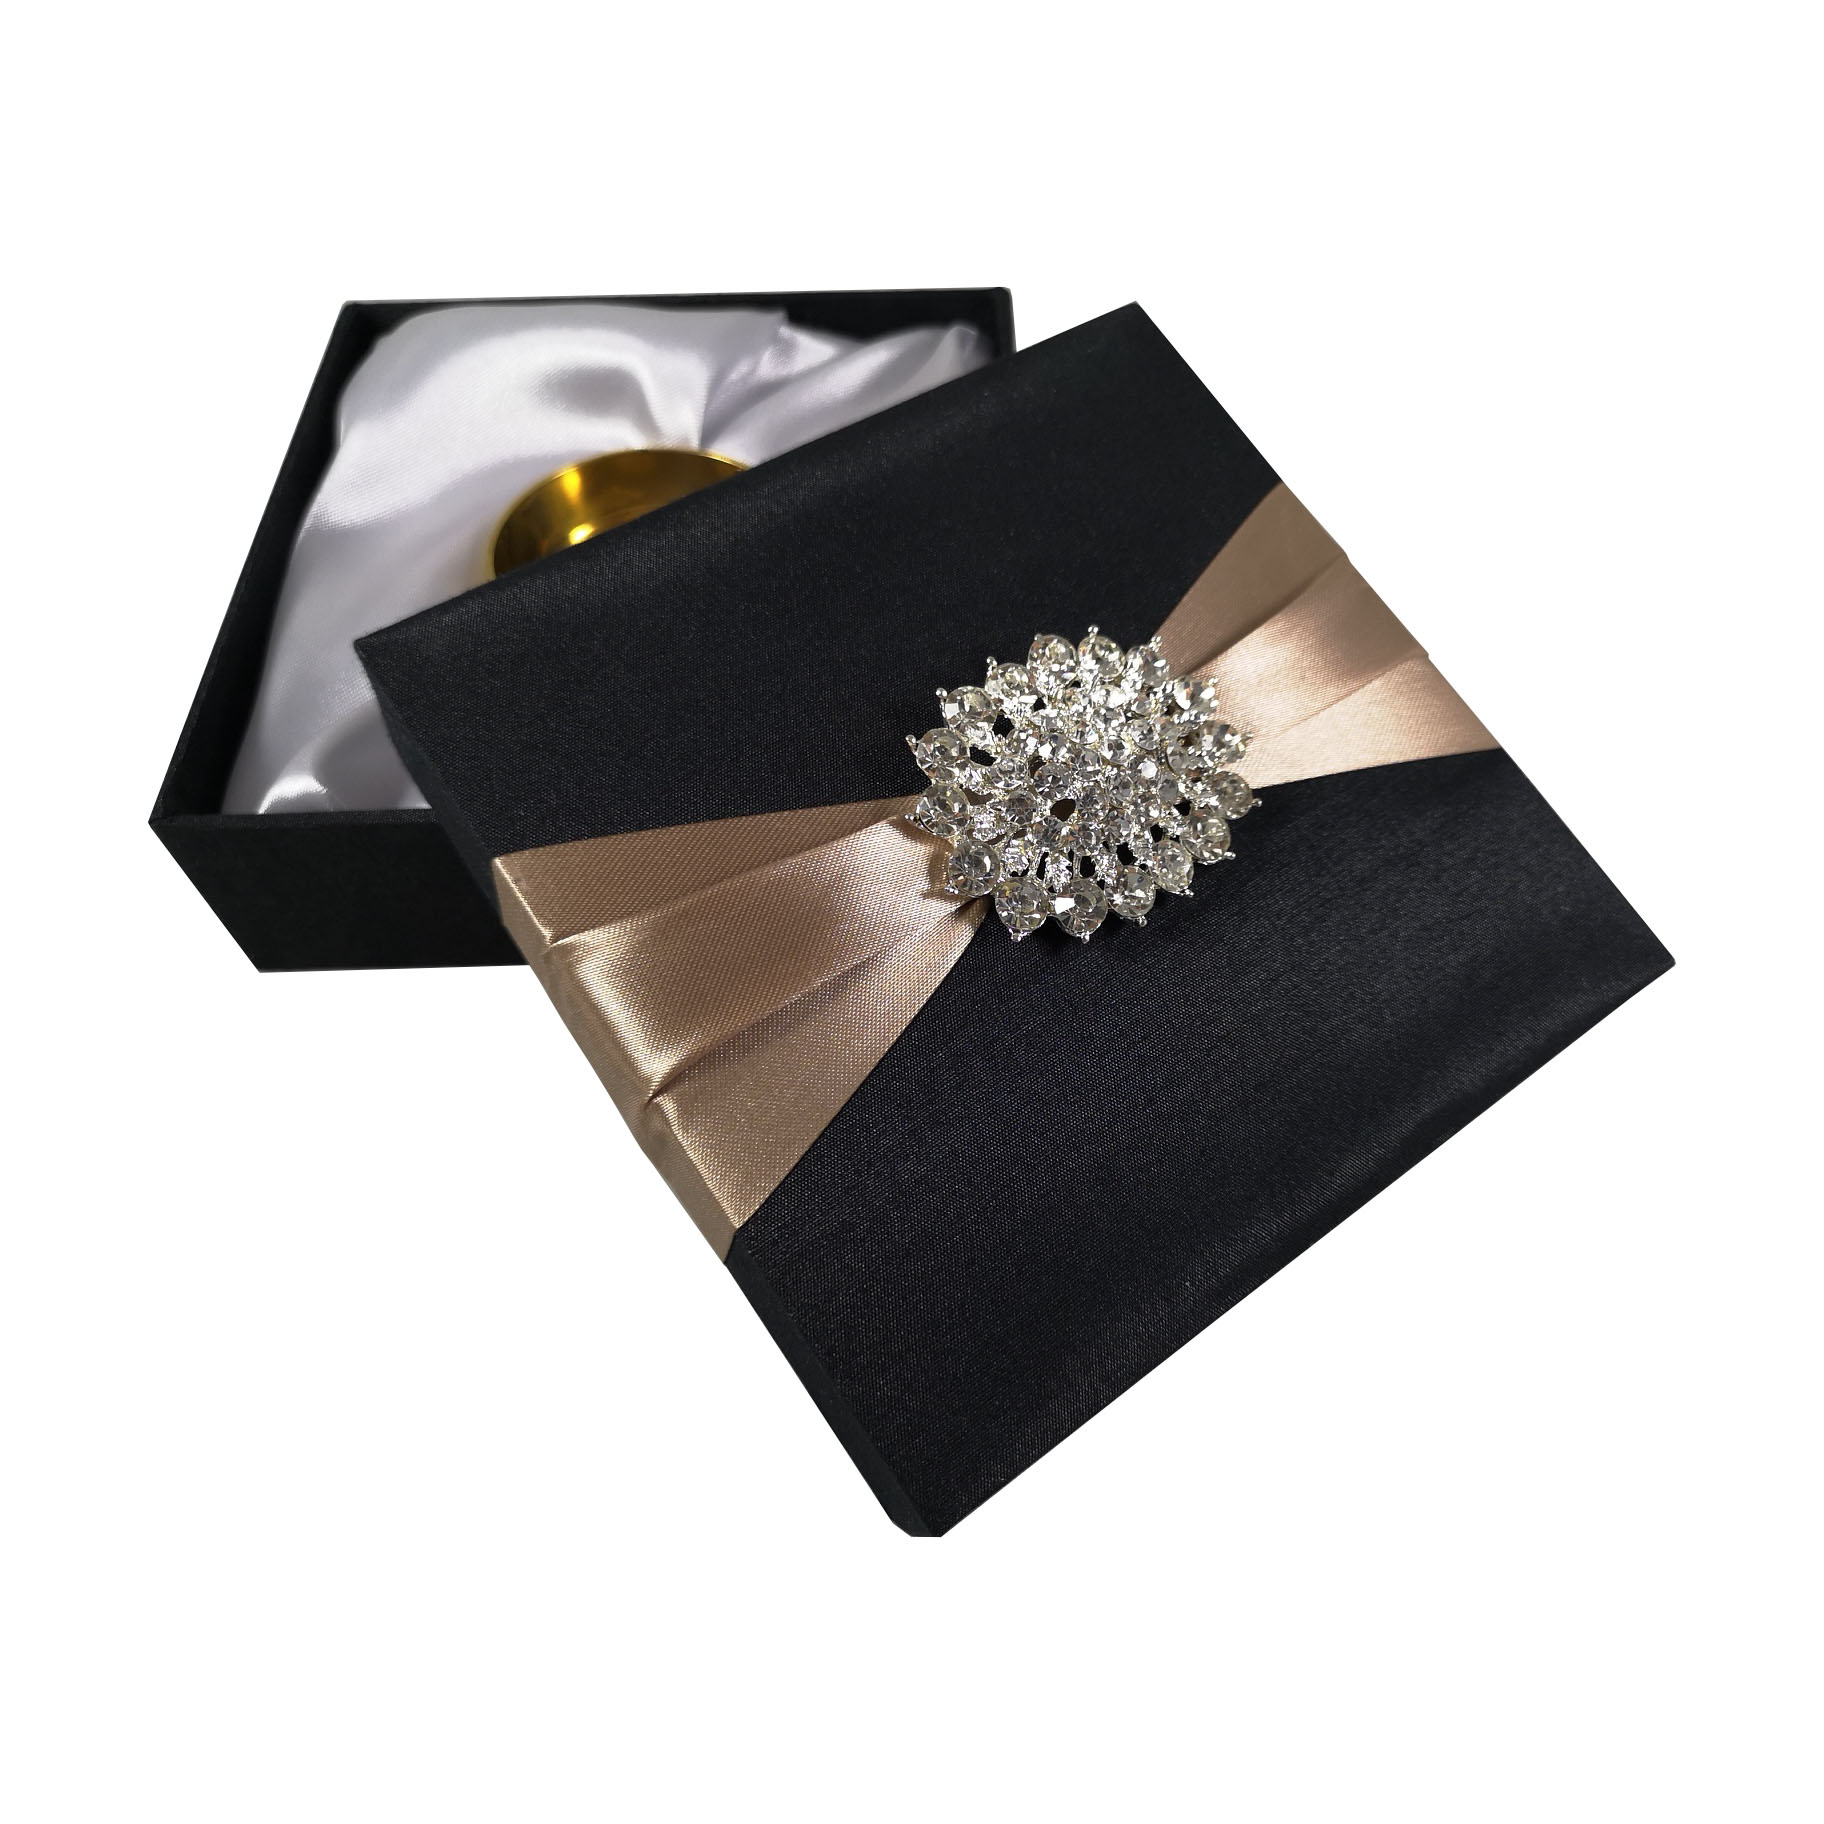 Elegant black silk packaging box